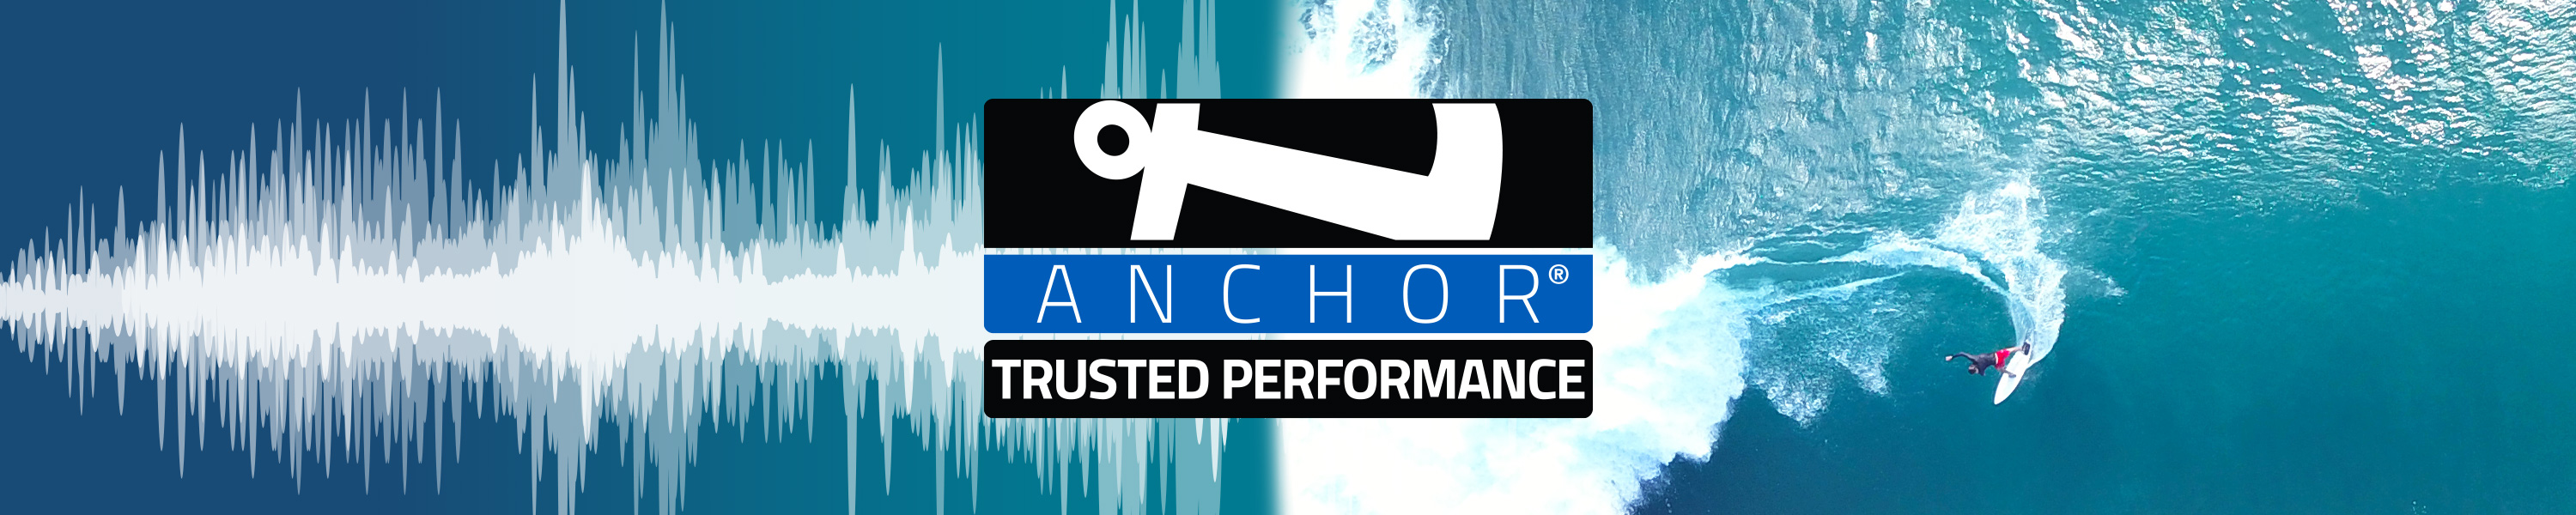 Anchor Trusted Performance